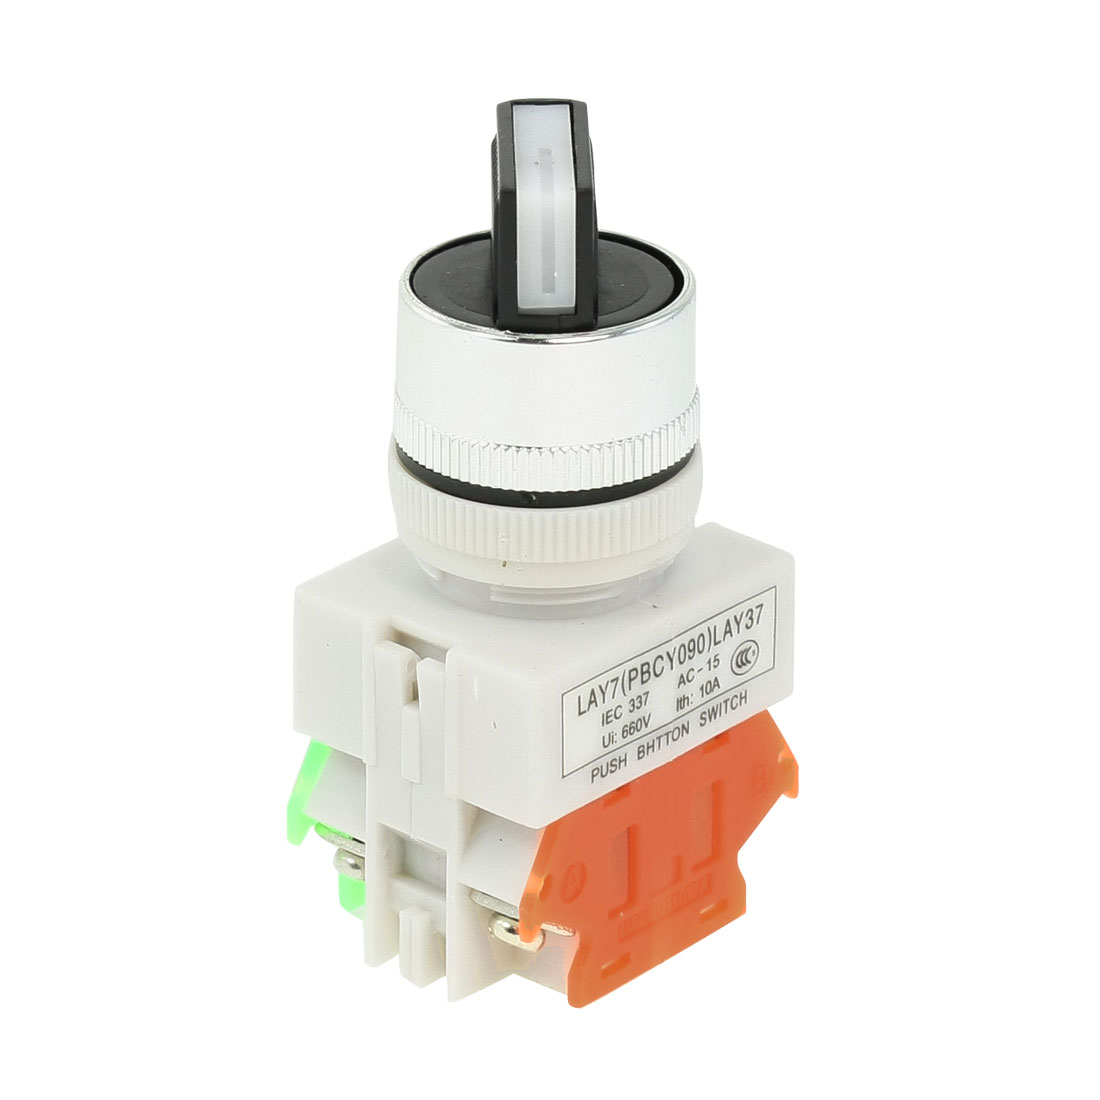 Ith 10A Ui 660V Rotary 2 Positions NC/NO Universal Push Button Switch